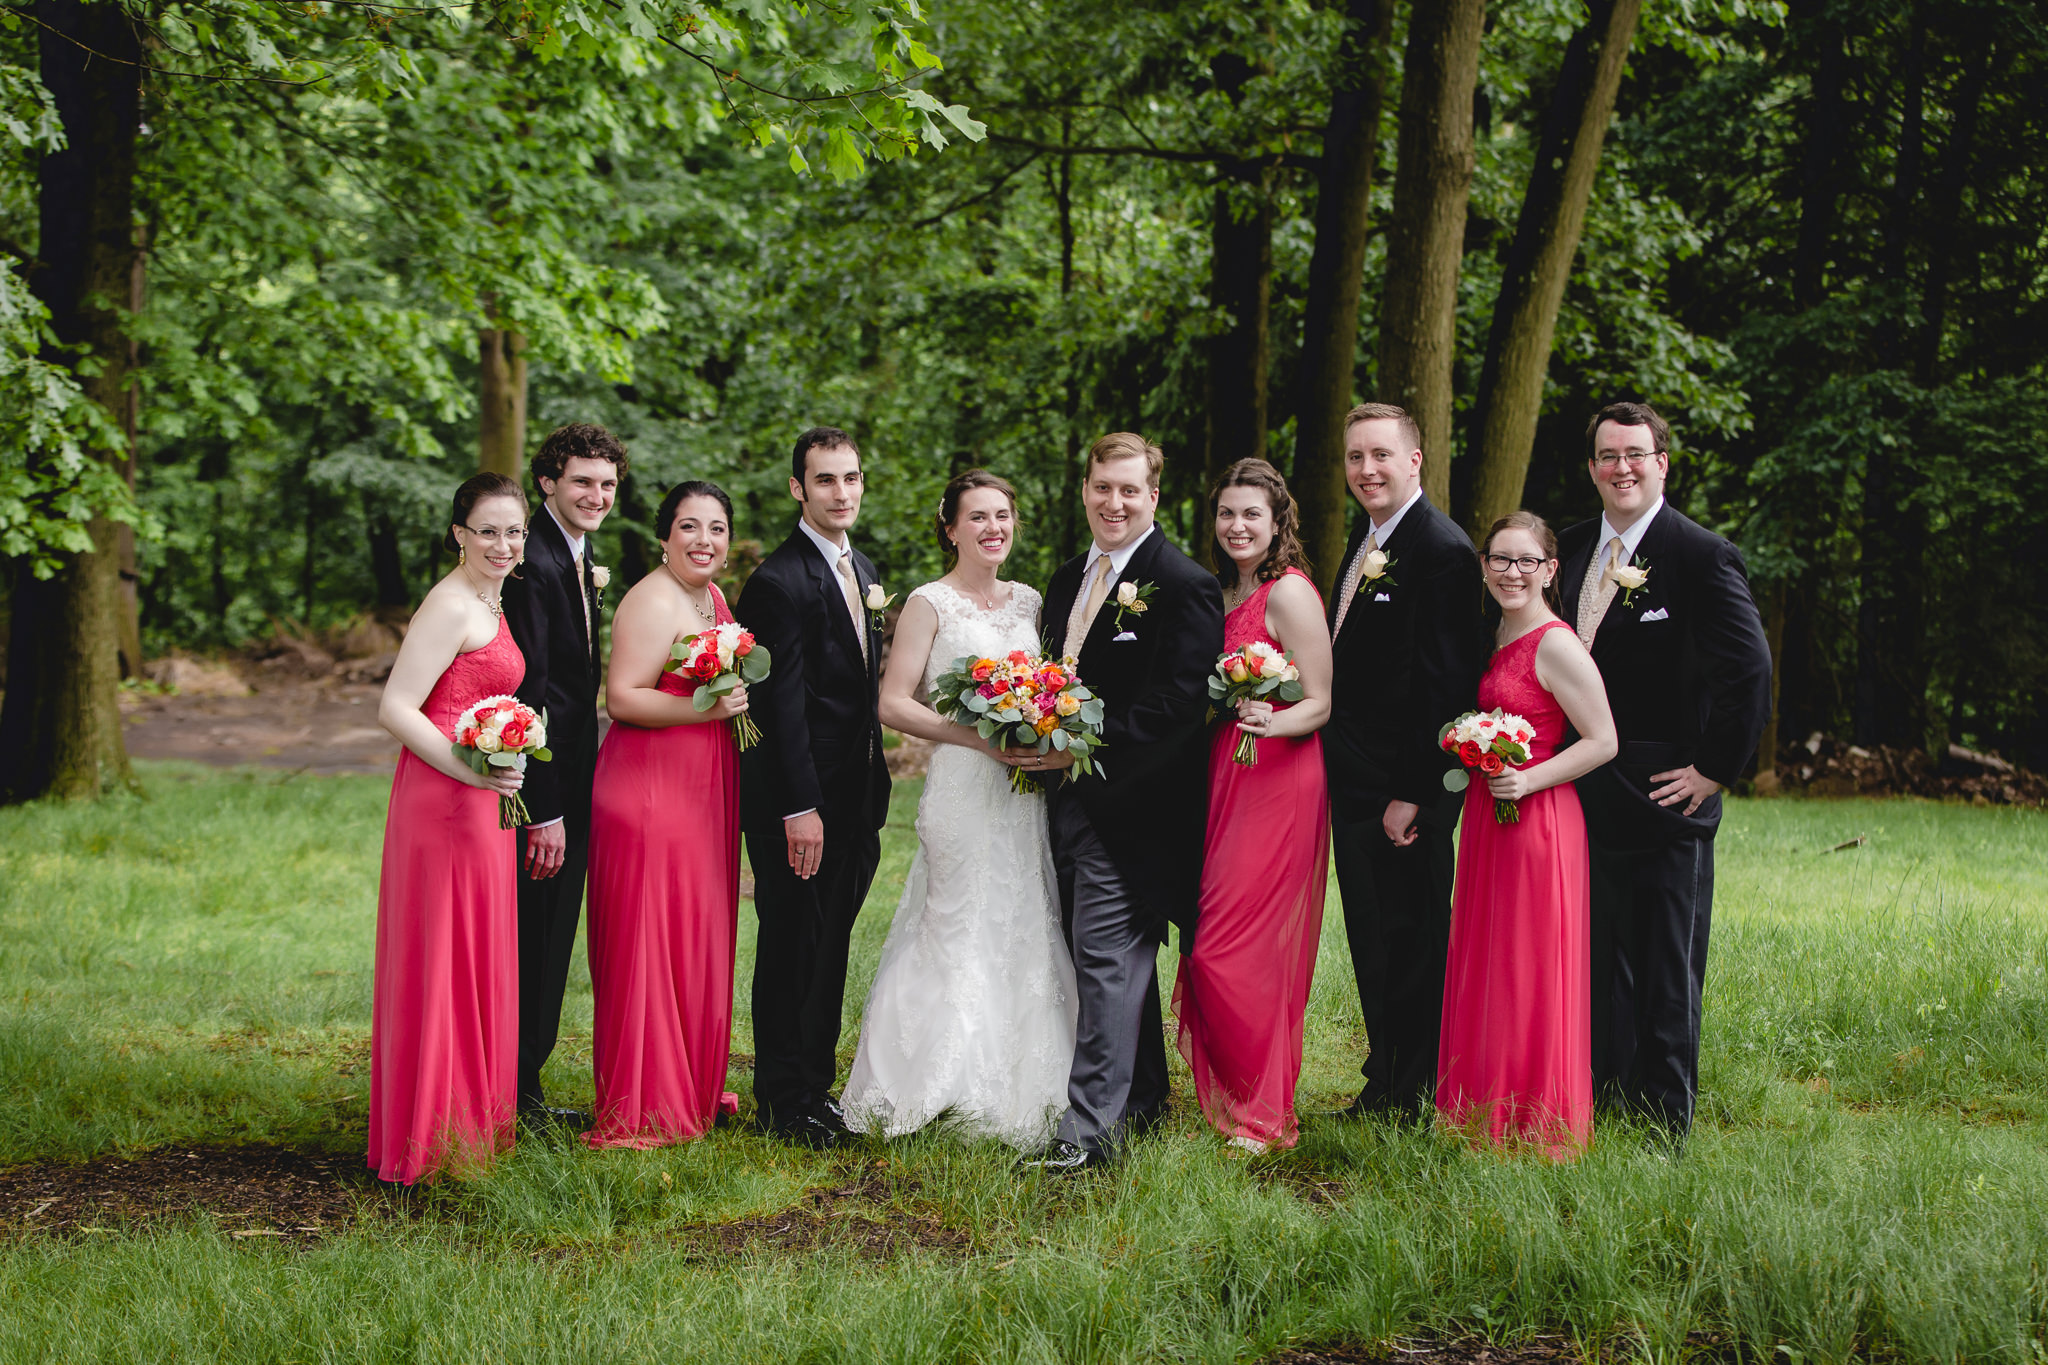 Bridal party at Shannopin Country Club wedding